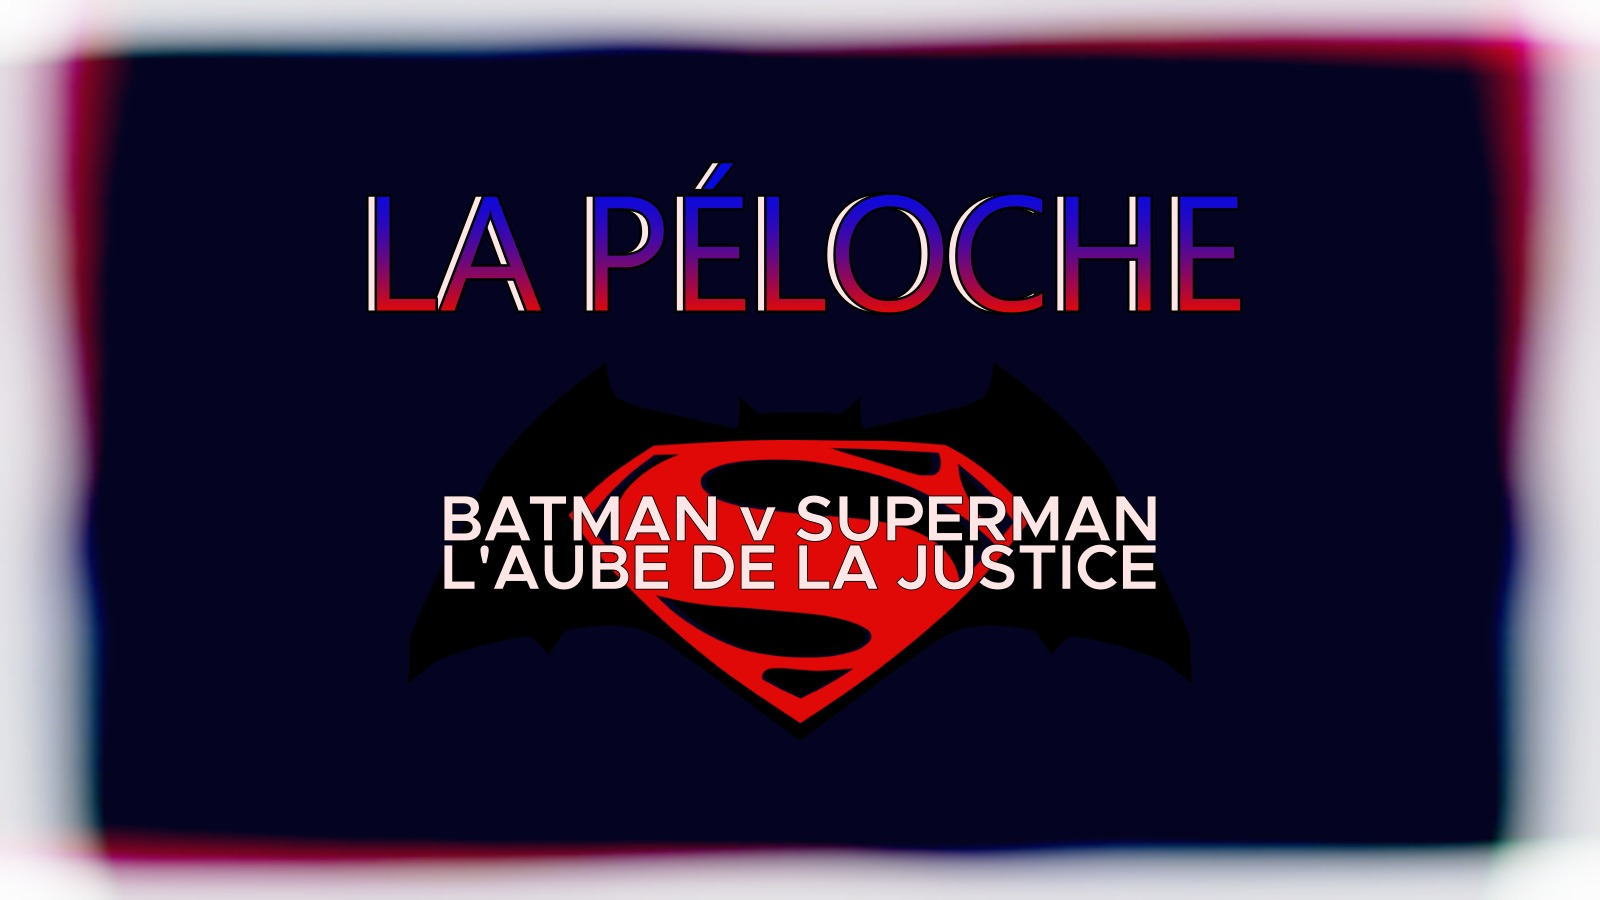 batman v superman la péloche